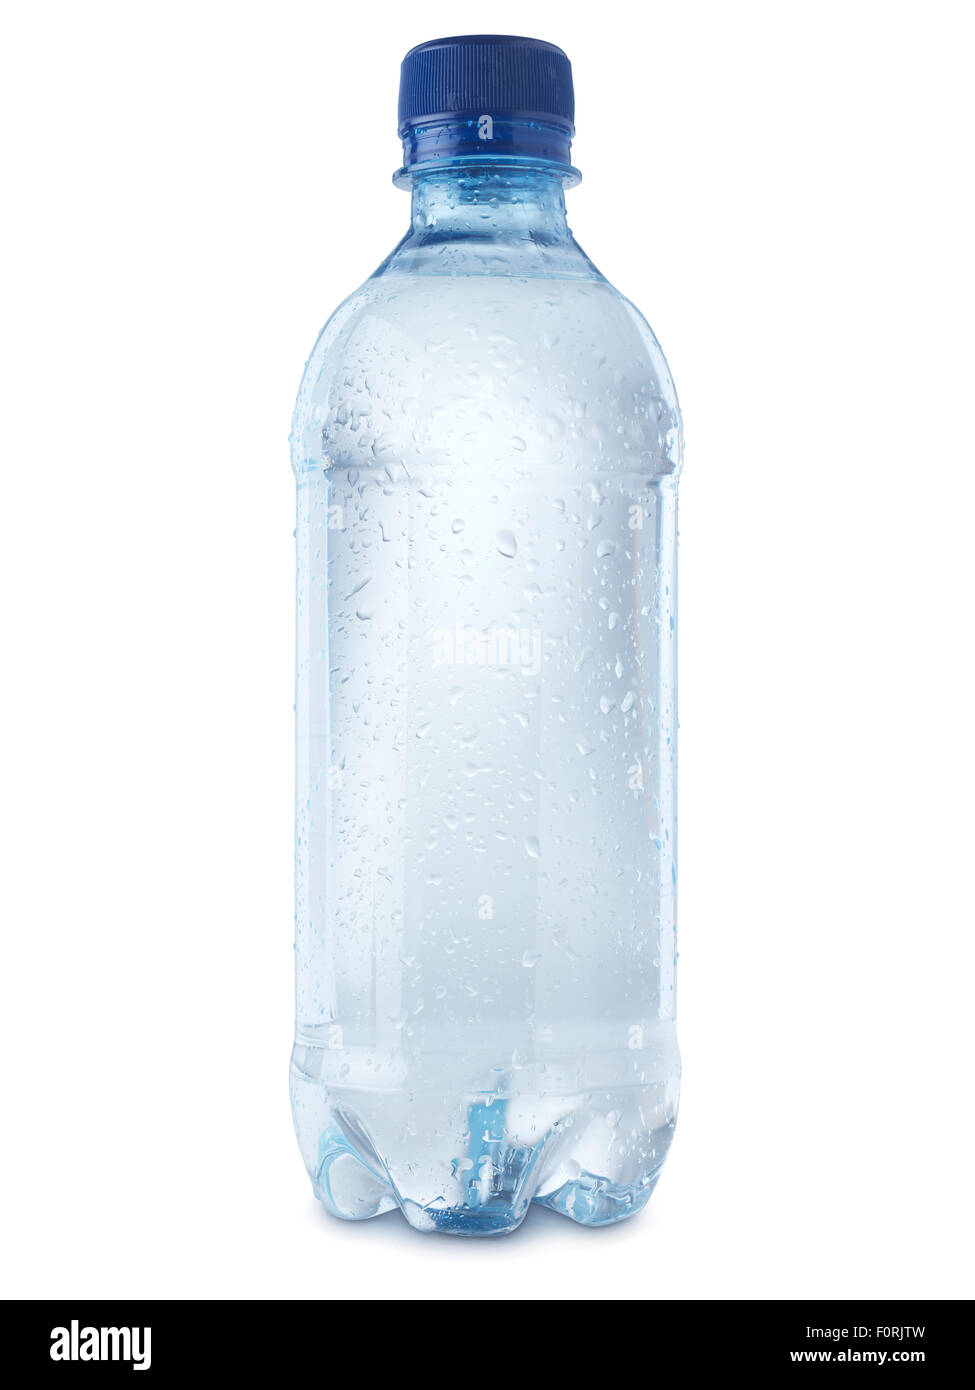 shot of mineral water bottle isolated on a white background with a clipping path, covered in condensation bubbles - Stock Image